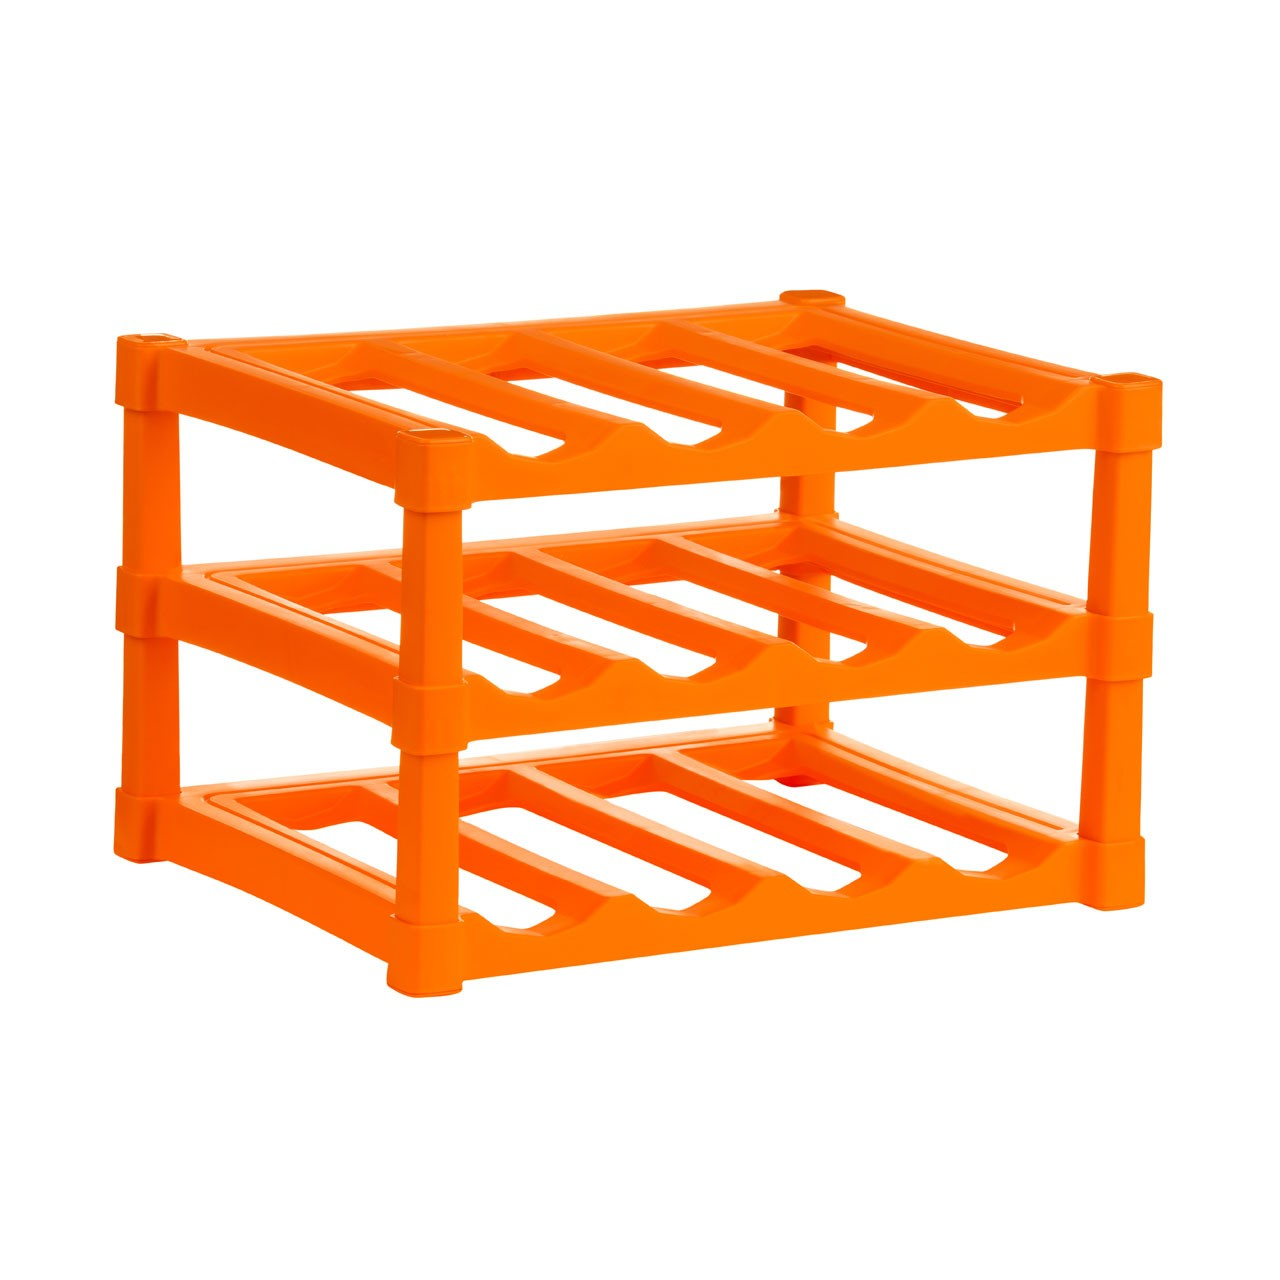 3 Tier Wine Rack - Orange